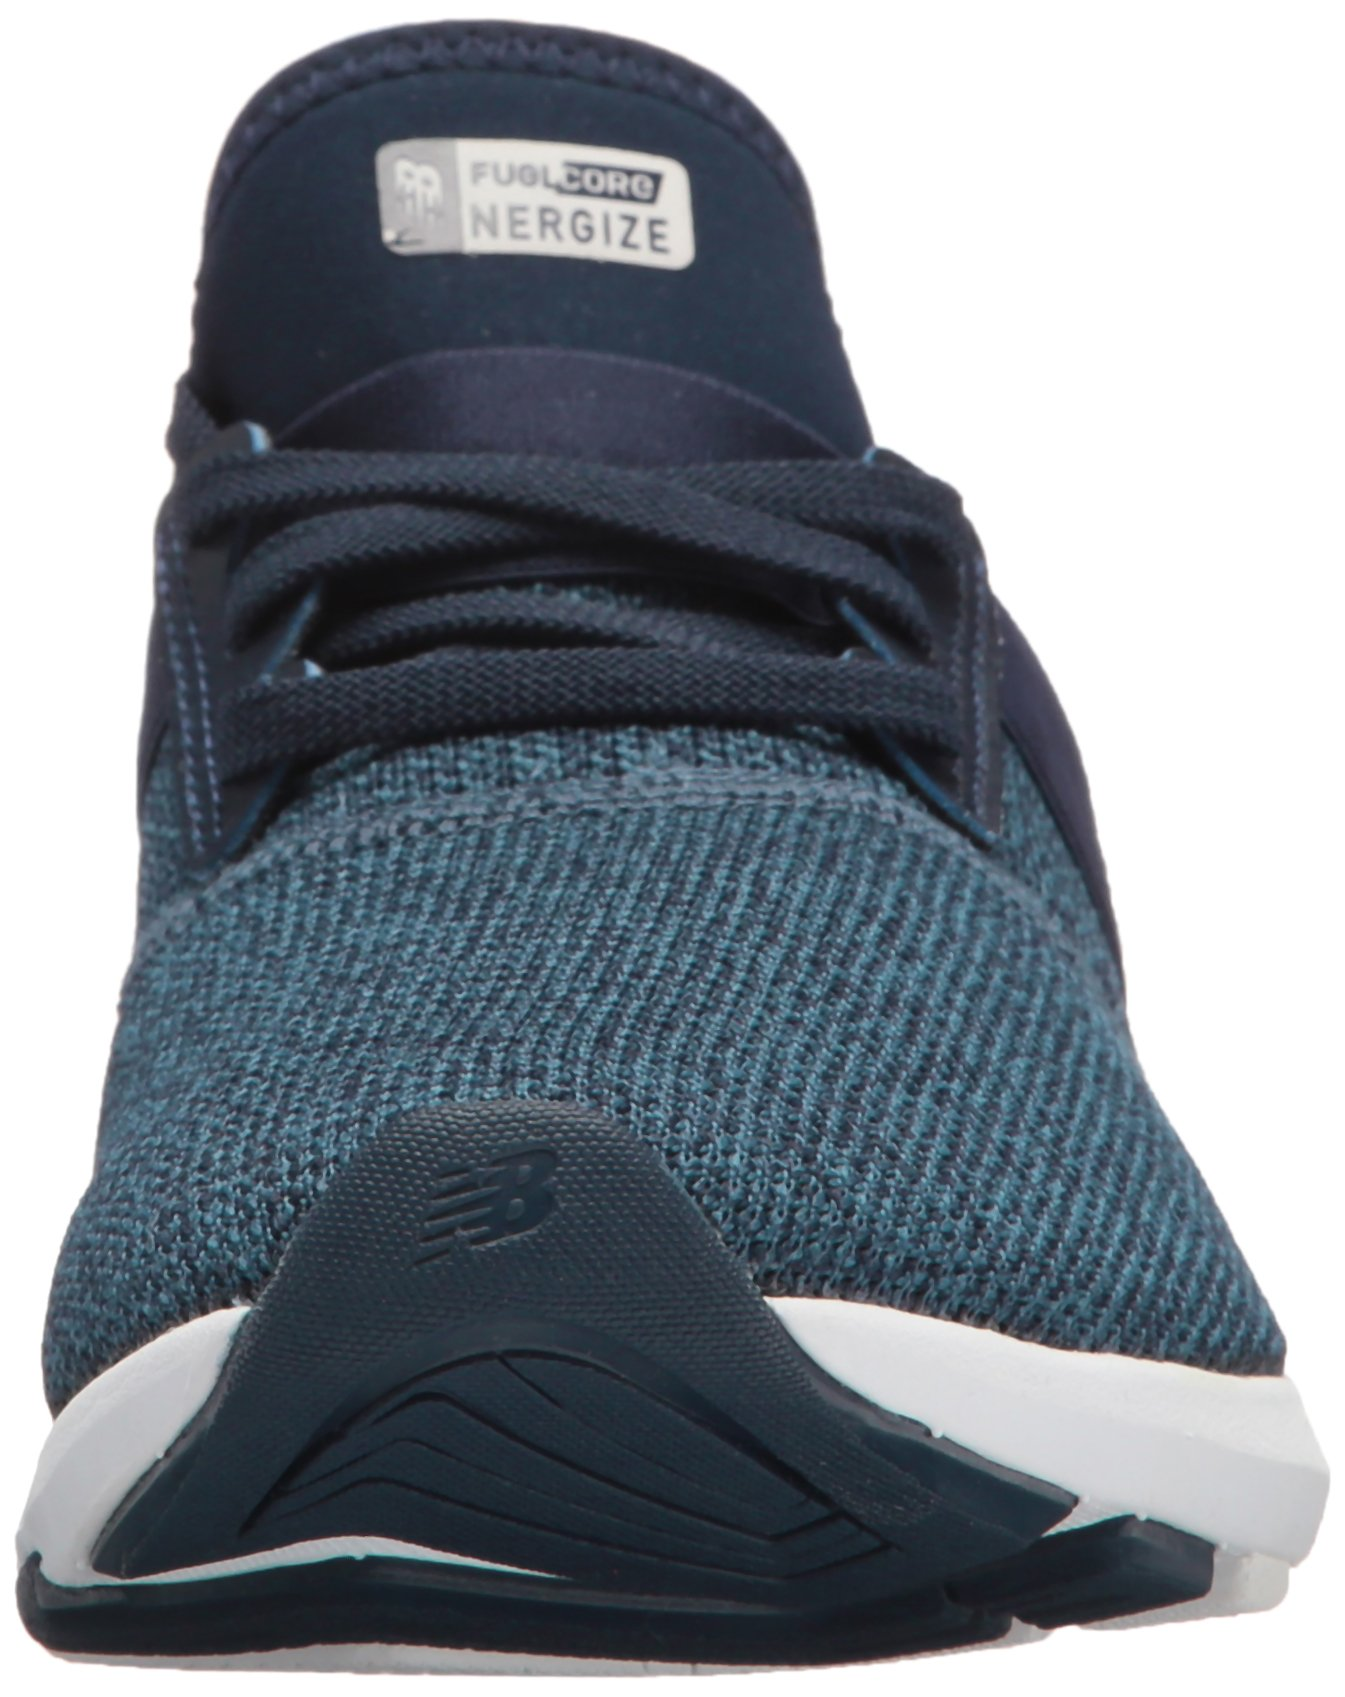 New Balance Women's FuelCore Nergize v1 FuelCore Training Shoe, Navy, 8 D US by New Balance (Image #4)